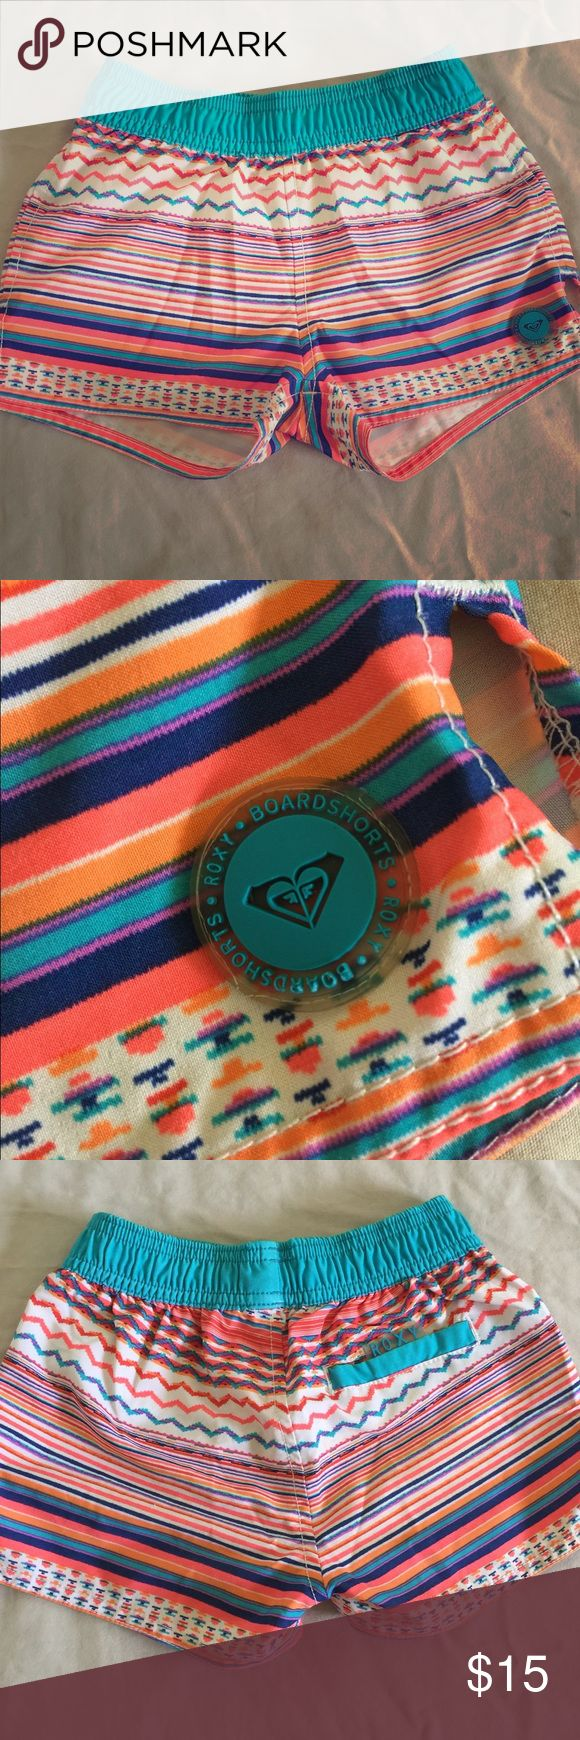 Girls Board Shorts Barely worn. Great condition, NO Damages. Fits girl's size 7/8 Roxy Swim Swim Trunks